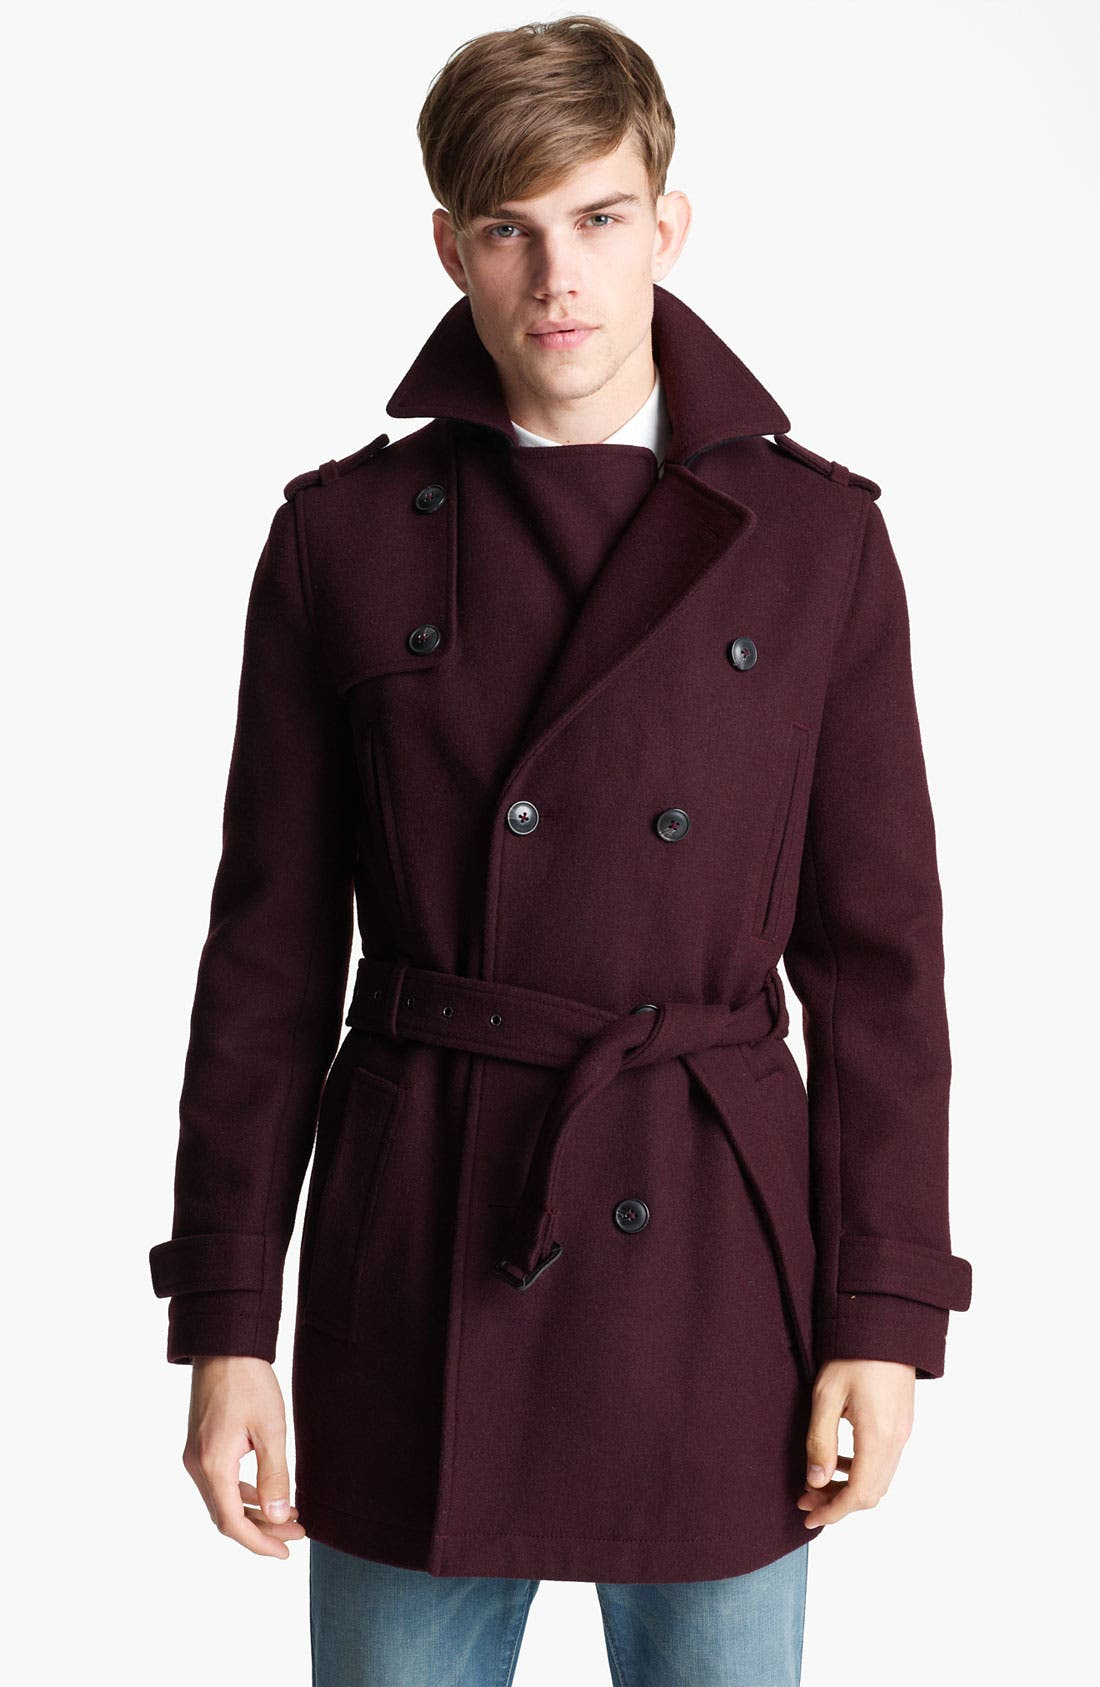 Alternate Image 1 Selected - Topman Double Breasted Wool Blend Trench Coat